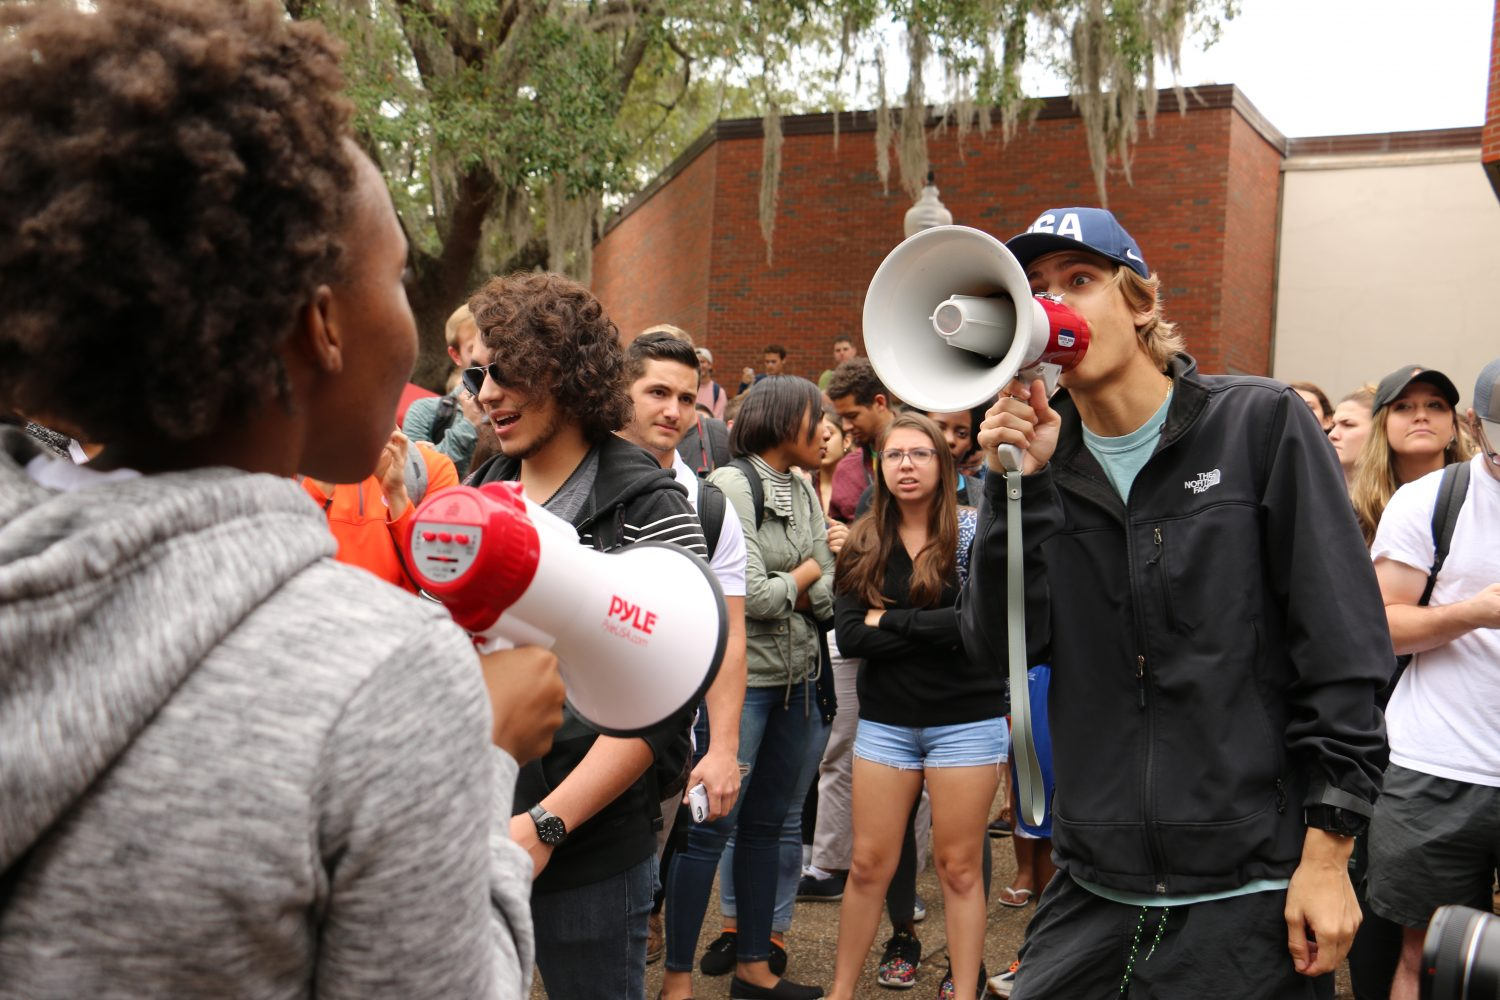 Cullen Powers (right) yells through a bullhorn at an anti-Trump protestor.